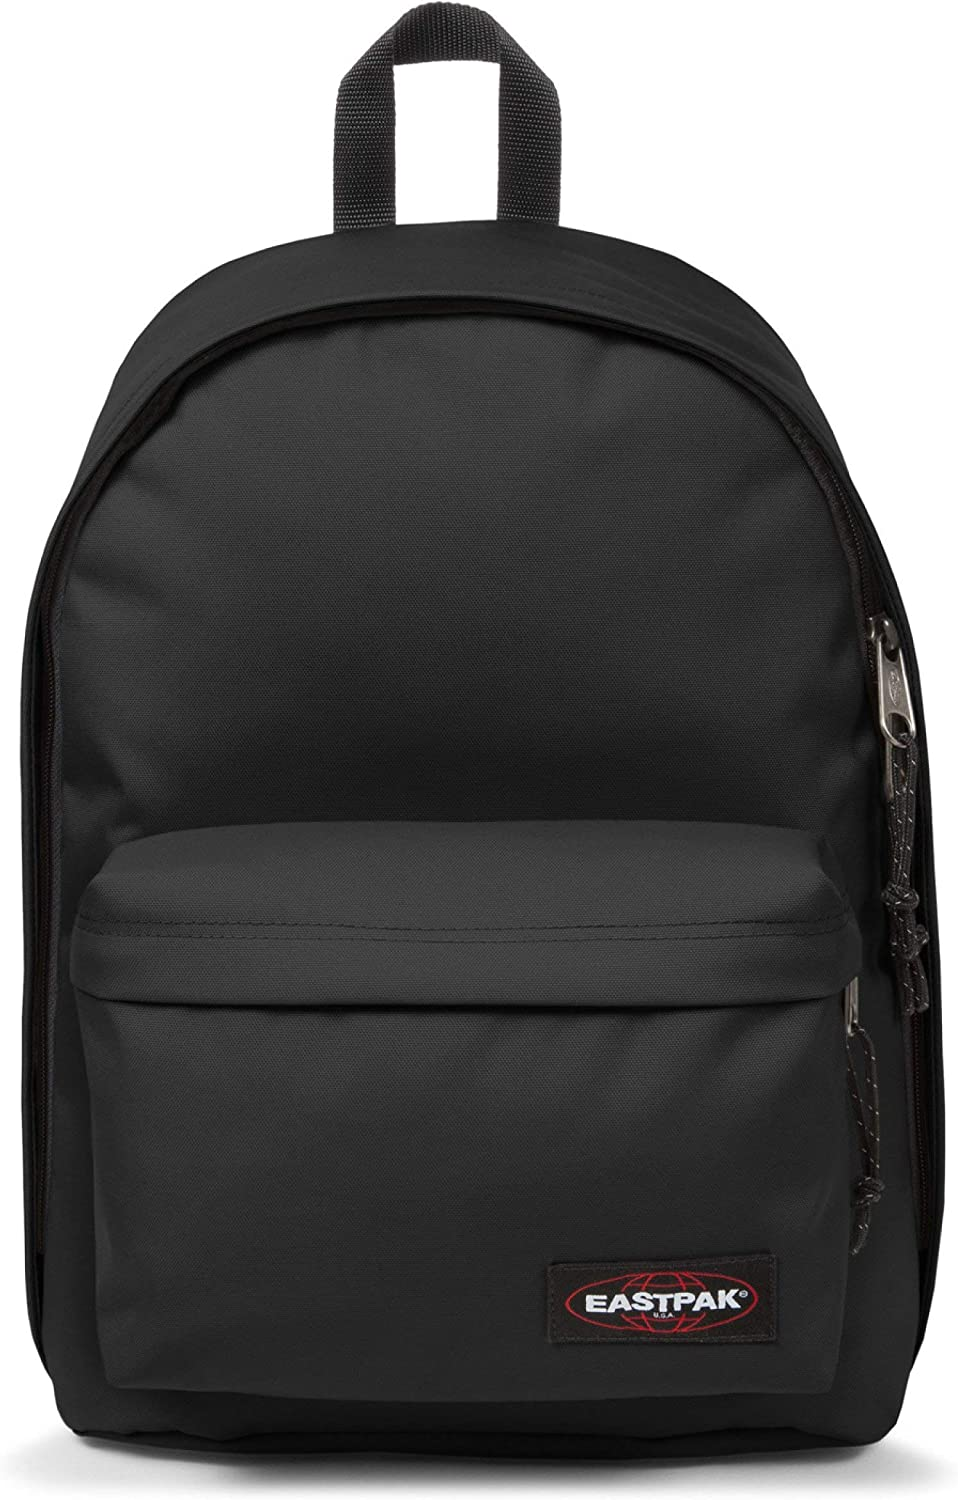 Eastpak Men's Out Of Office Backpack, Black, One Size